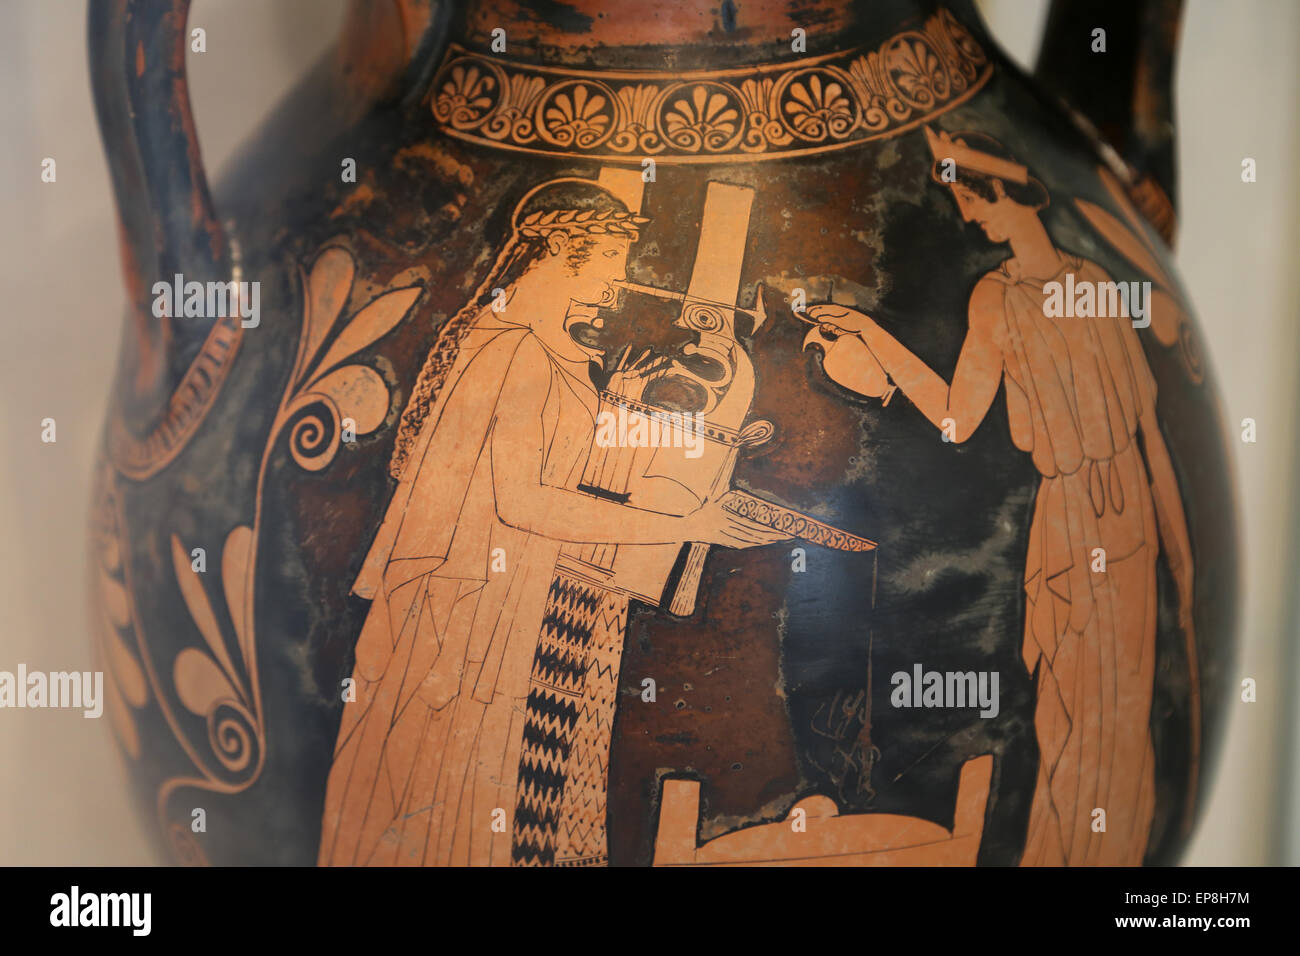 Terracotta pelike (jar). Greek, Attic, red-figure, mid 5th century BC. Apollo and his sister, Artemis, pouring libation - Stock Image